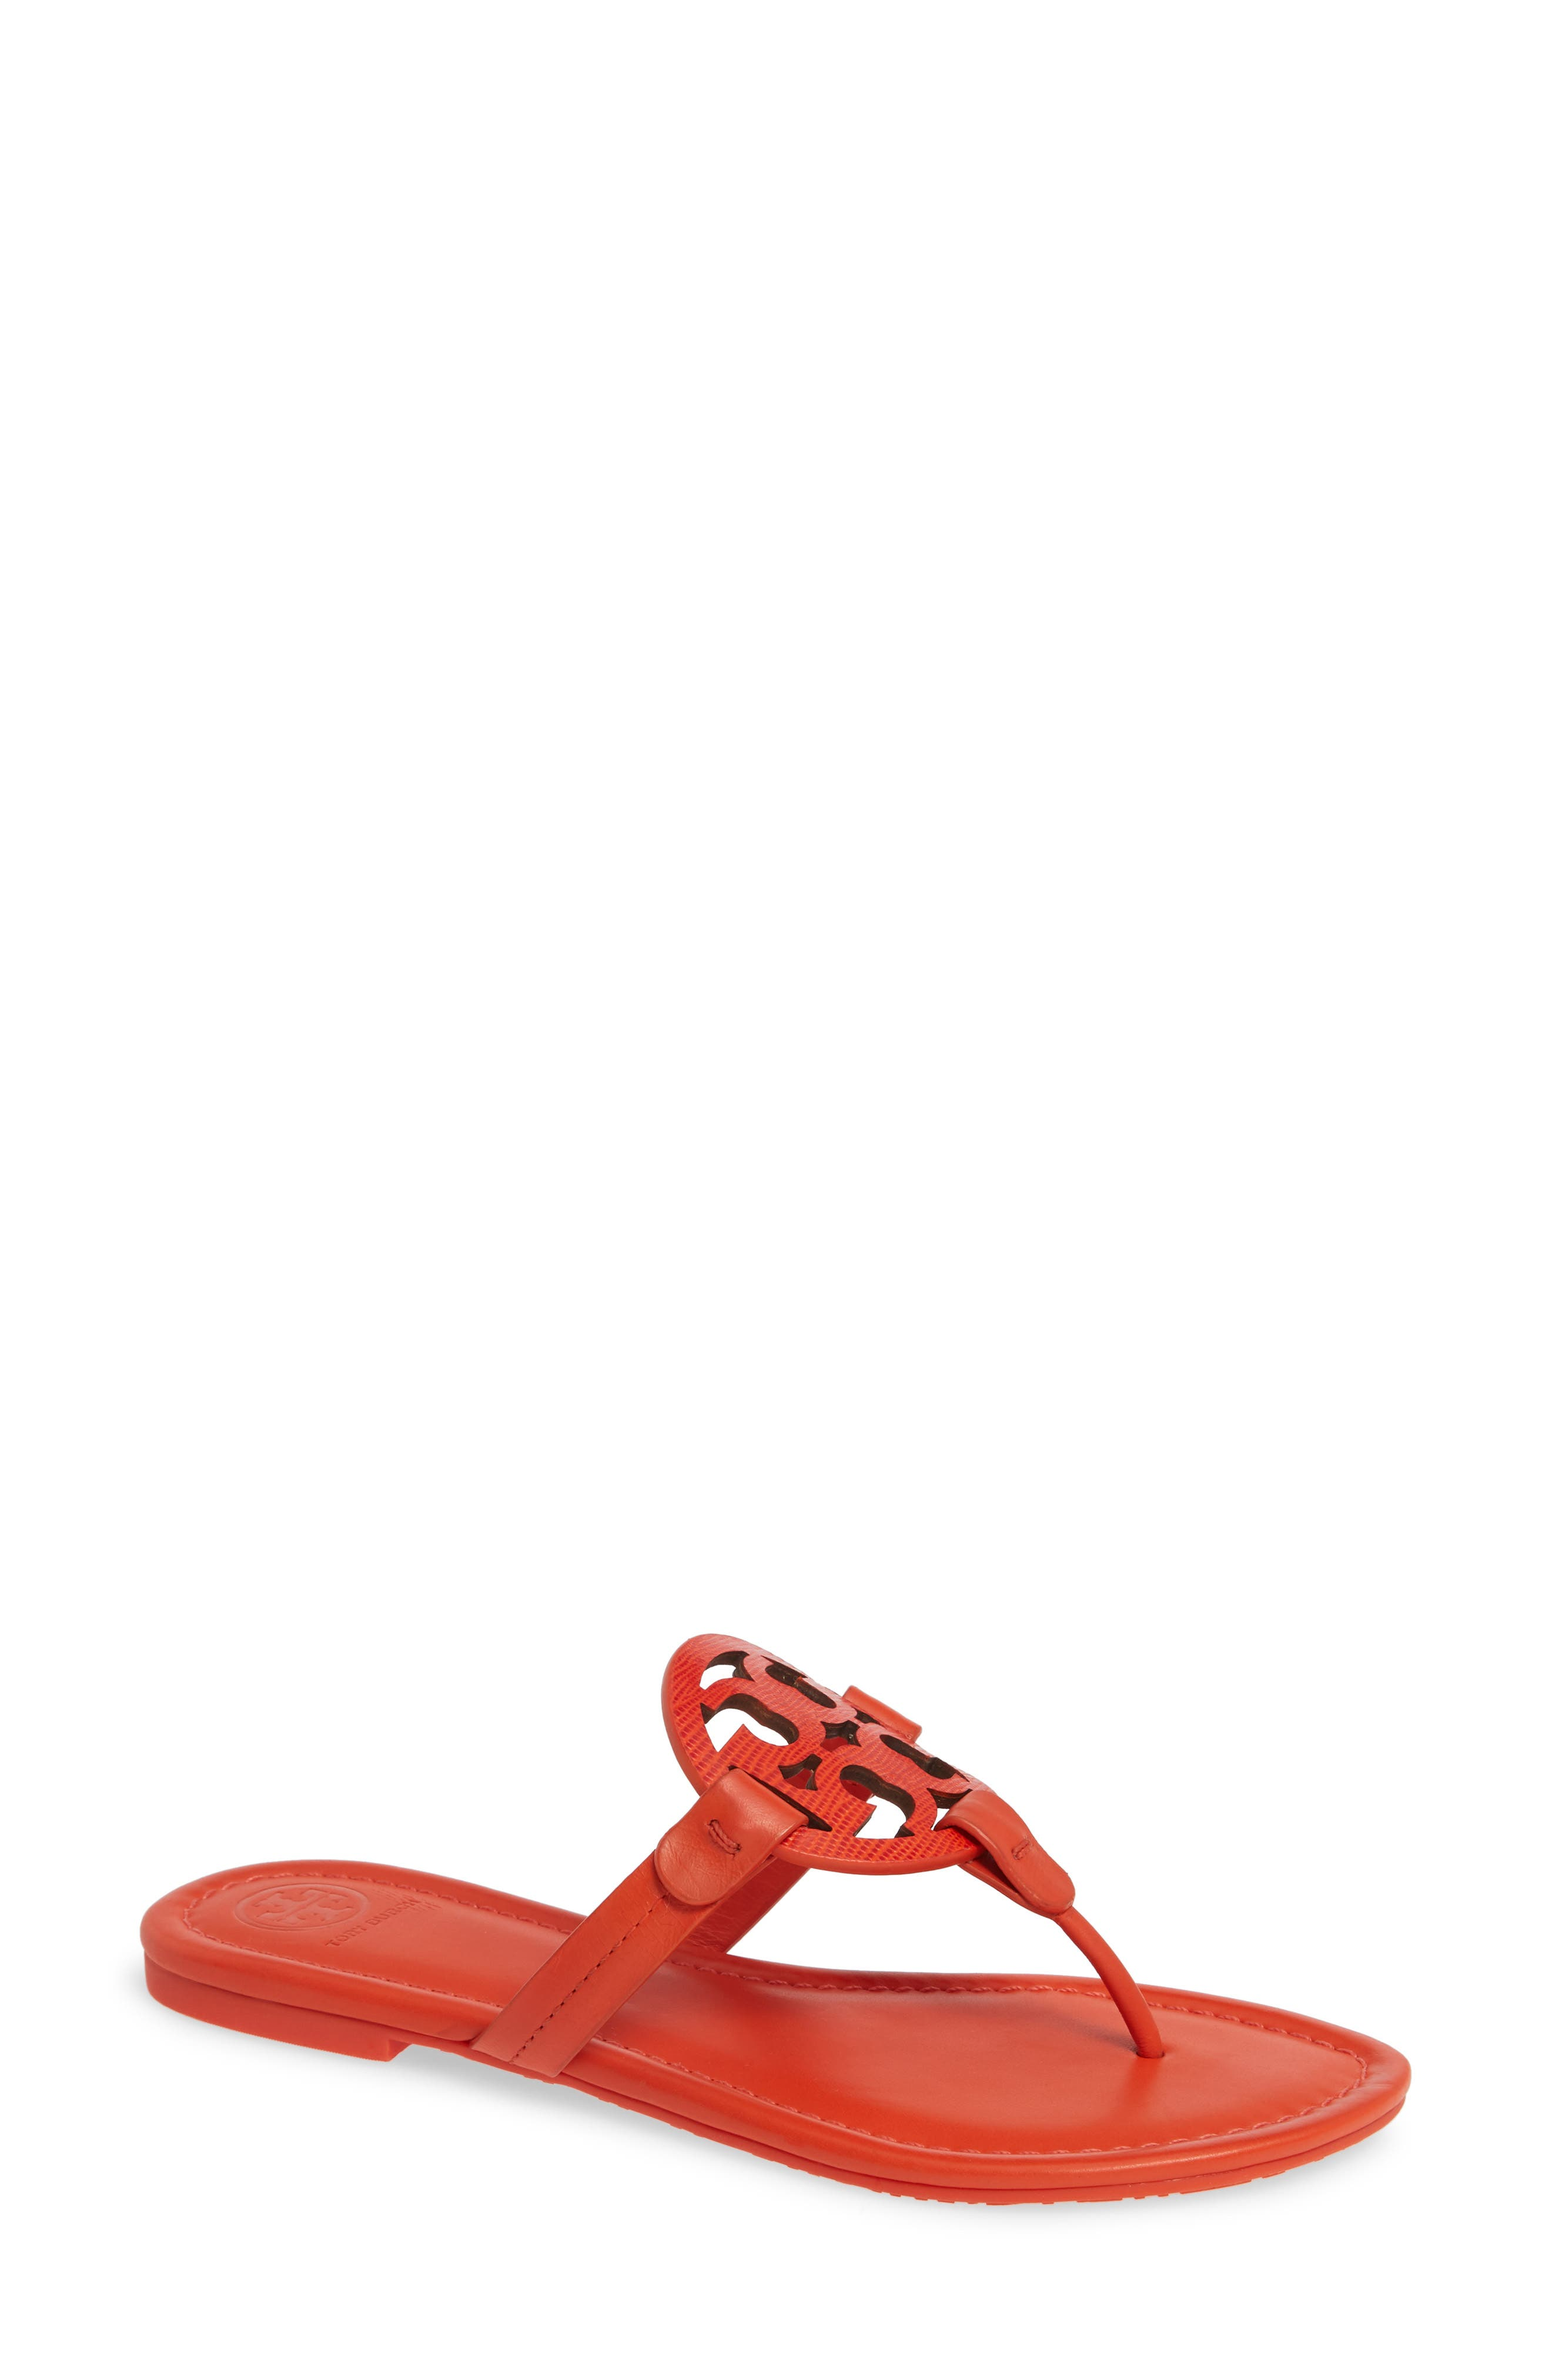 Tory burch sandals on sale nordstrom